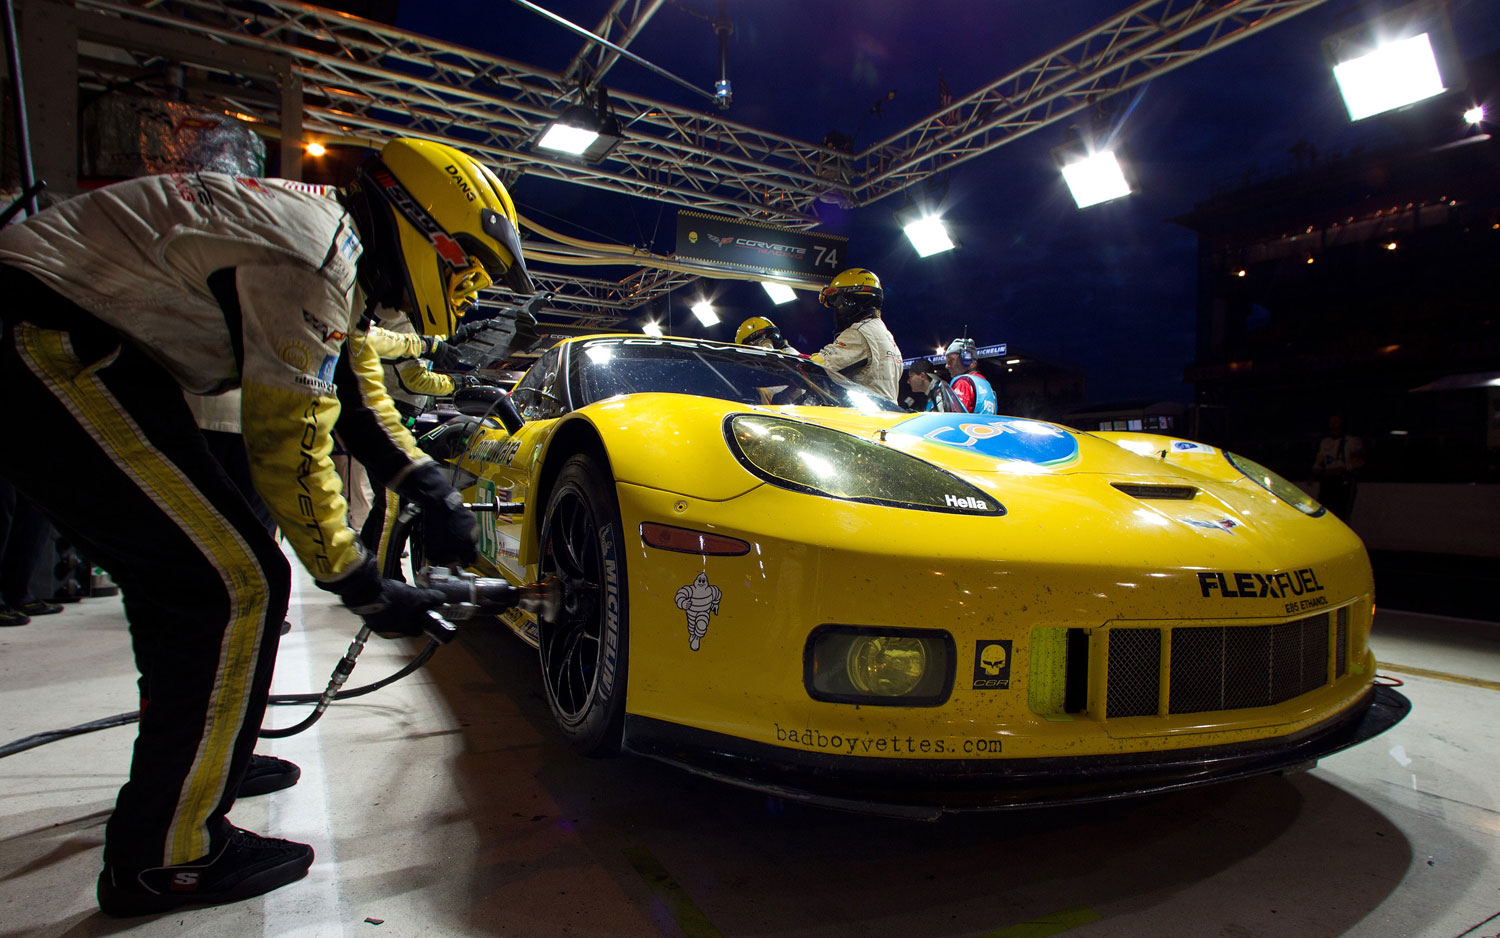 2011 Chevrolet Corvette C6 R At Le Mans In Pit1